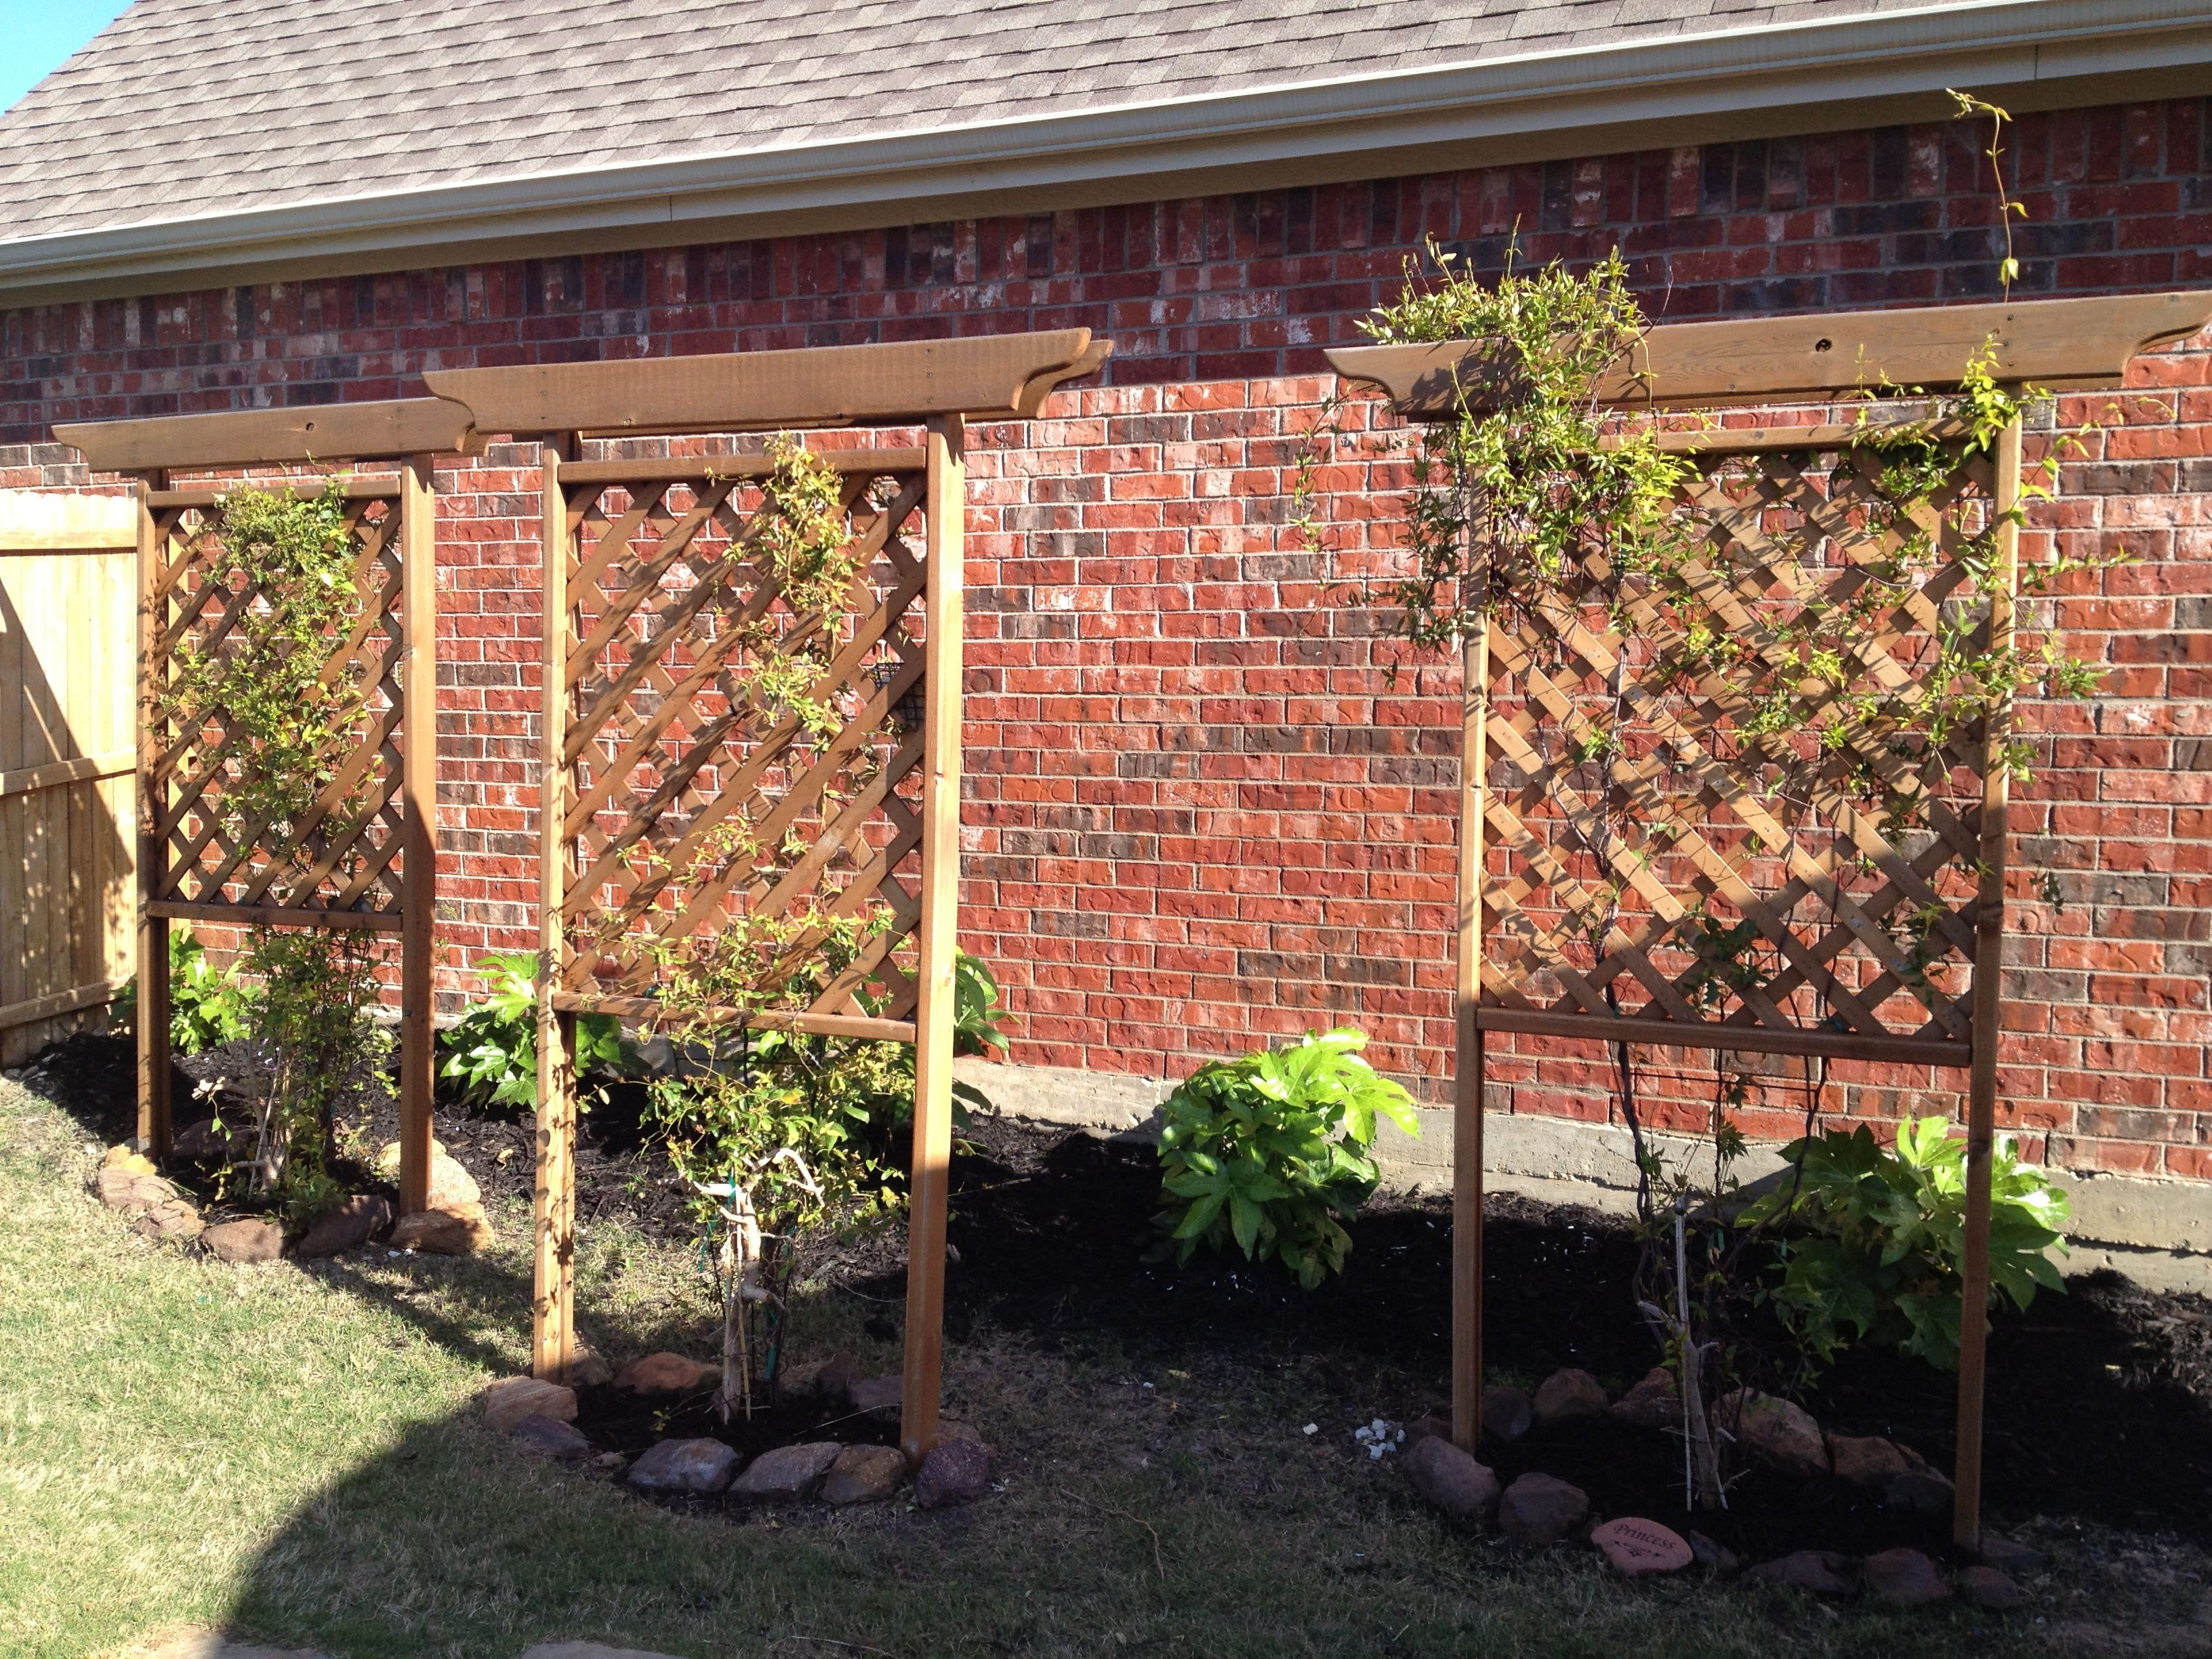 Free Standing Trellis Ideas Part - 16: Hide An Ugly Brick Wall From A Neighboru0027s House Using Some Free-standing  Trellis U0026 Carolina Jasmine. Once That Jasmine Grows In Thick, No More Ugly  Wall!